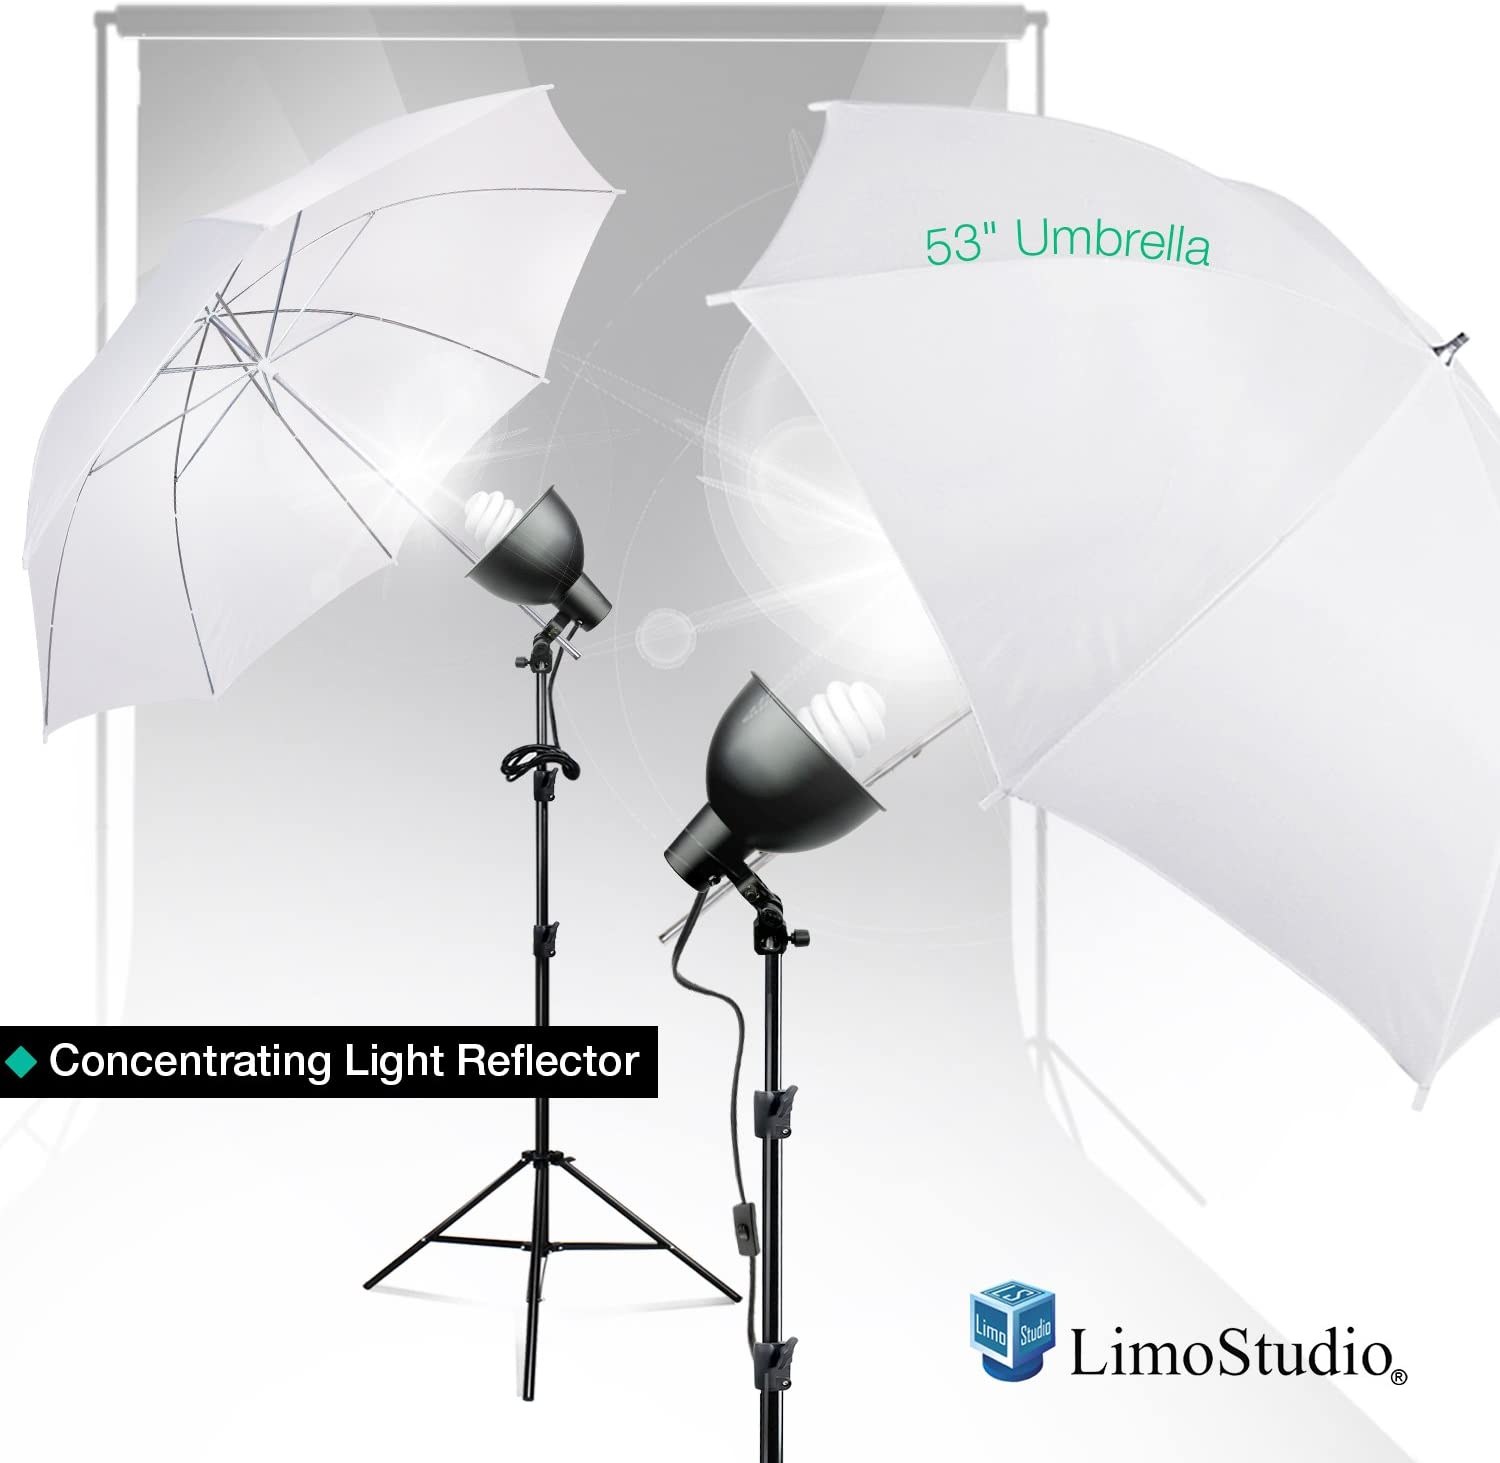 LimoStudio White Umbrella Reflector Complete Kit T Max 53% OFF Lighting with New product!!